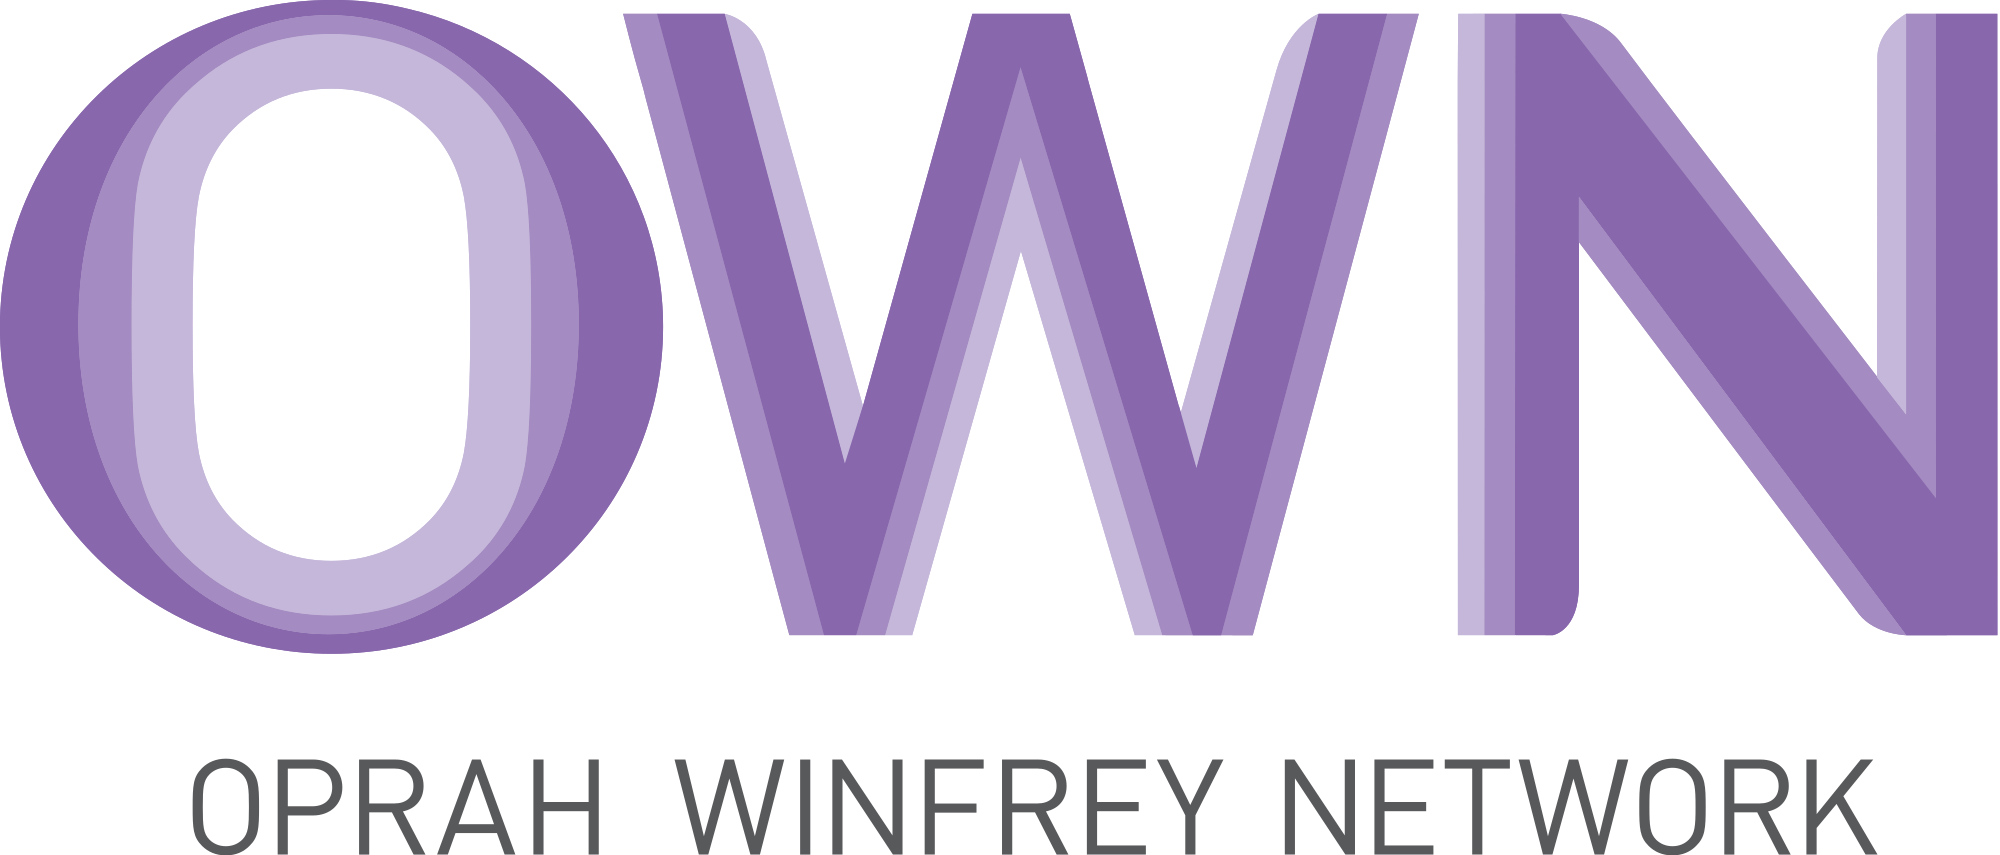 OWN_2011_logo.png